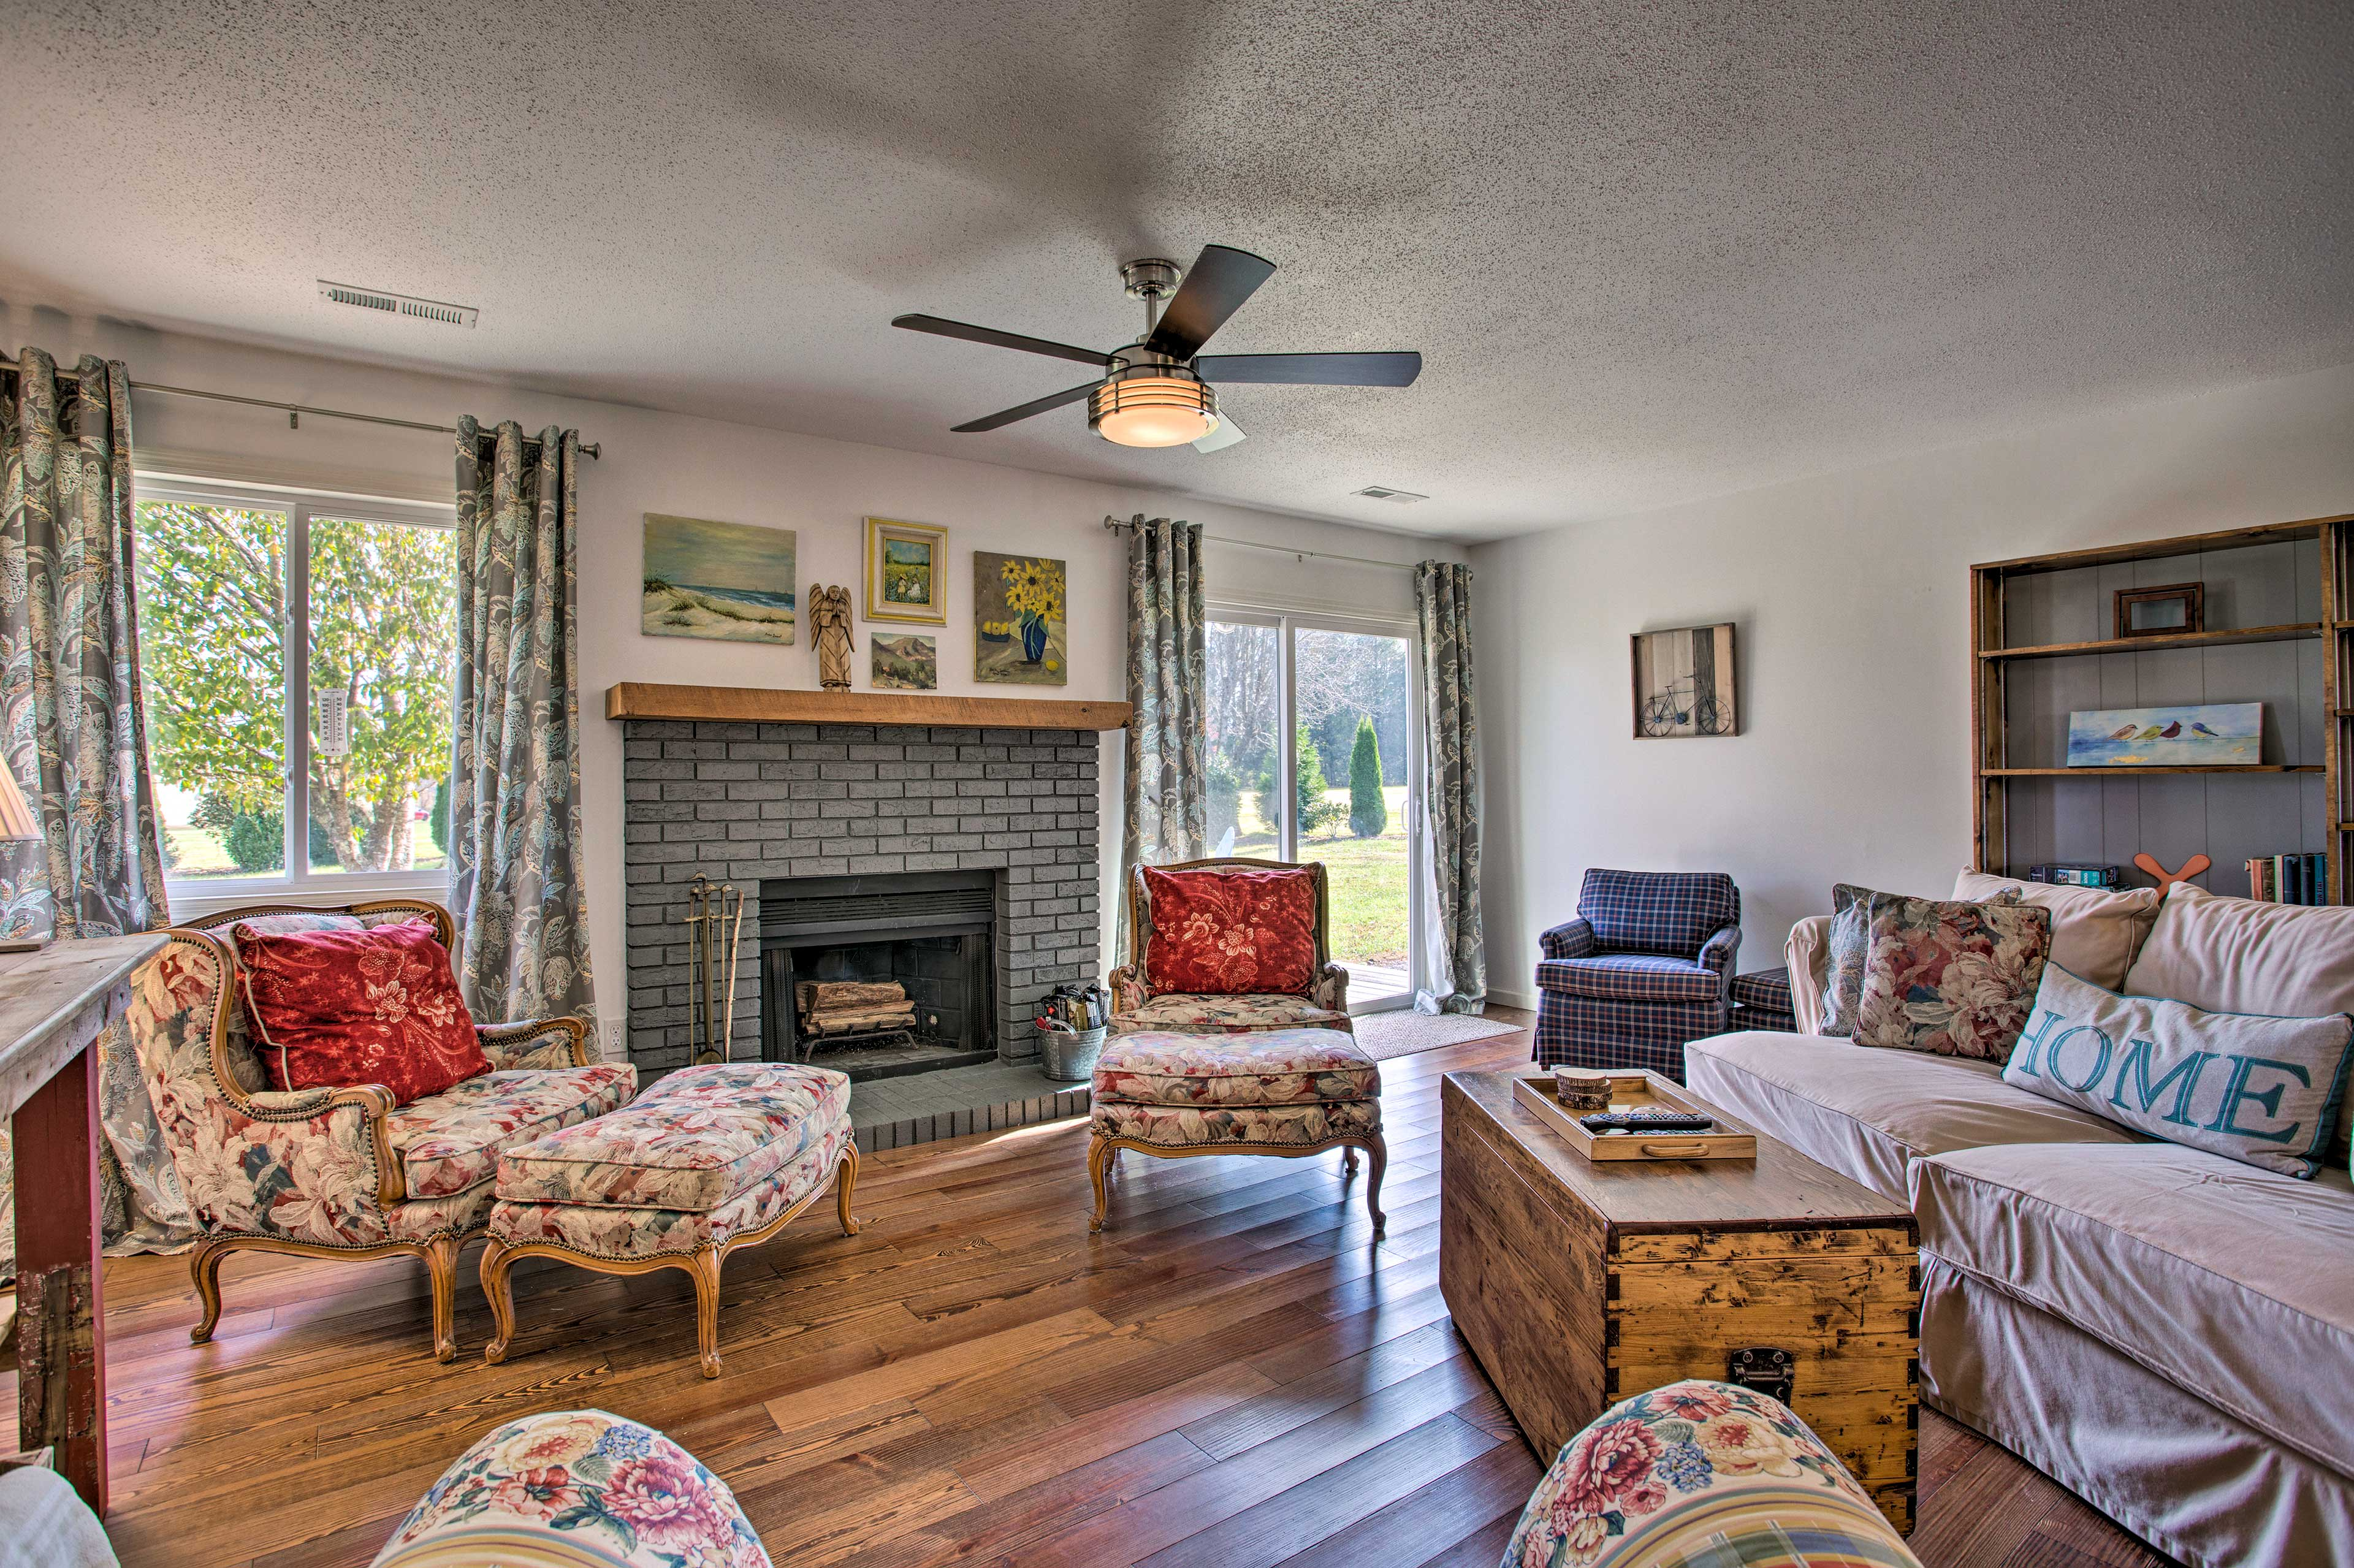 All the at-home comforts await after days spent exploring North Carolina!